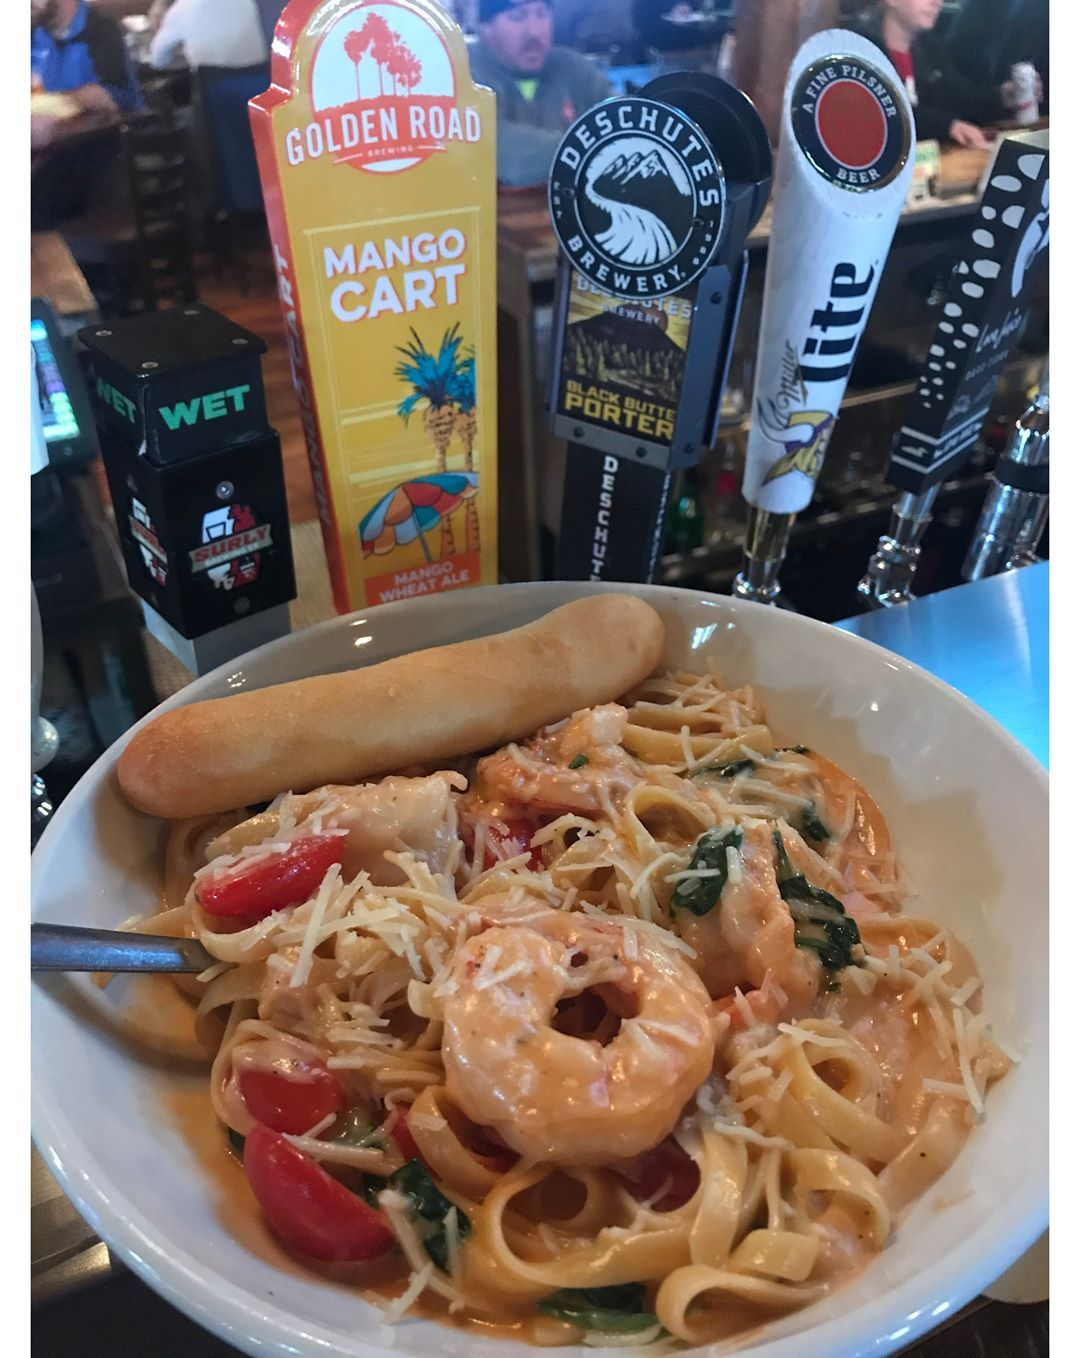 Friday night dinner special: Shrimp Florentine.  November 1st also means a new beer of the month: Deschutes Black Butte Porter. #foodstagram #instalove #eatingfortheinsta #fridaynightdinner